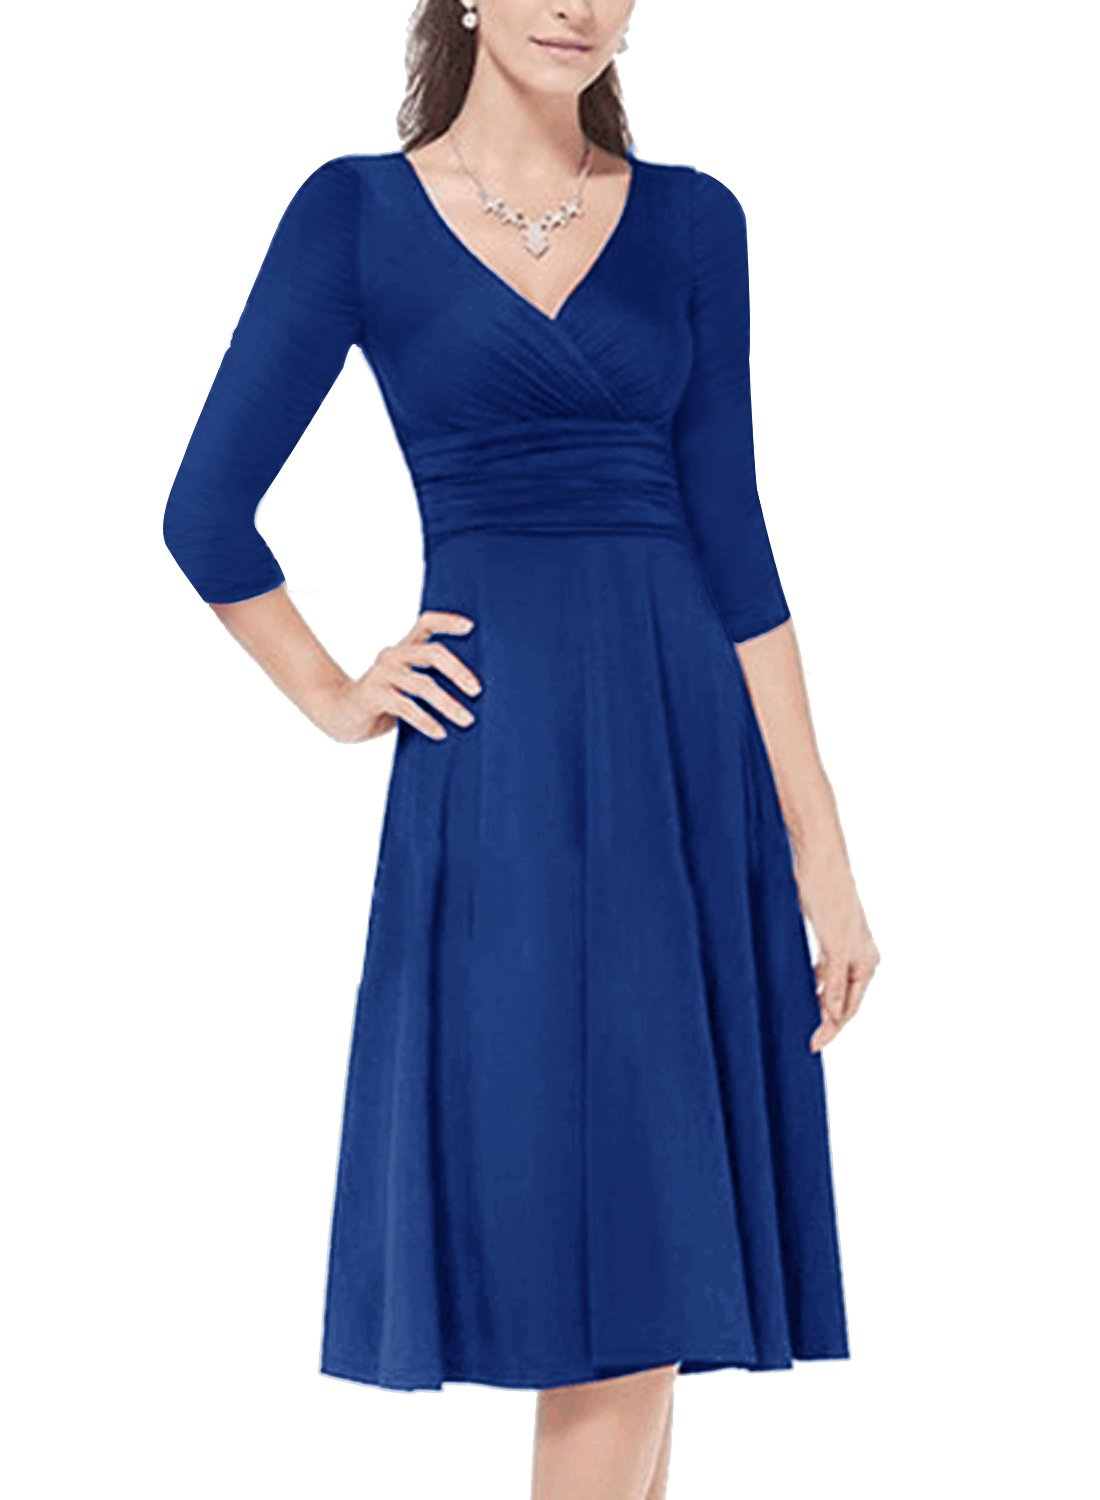 HUSKARY Women's Slimming 3/4 Sleeve Fit-and-Flare Crossover Ruched Waist Dress (Blue, Small)